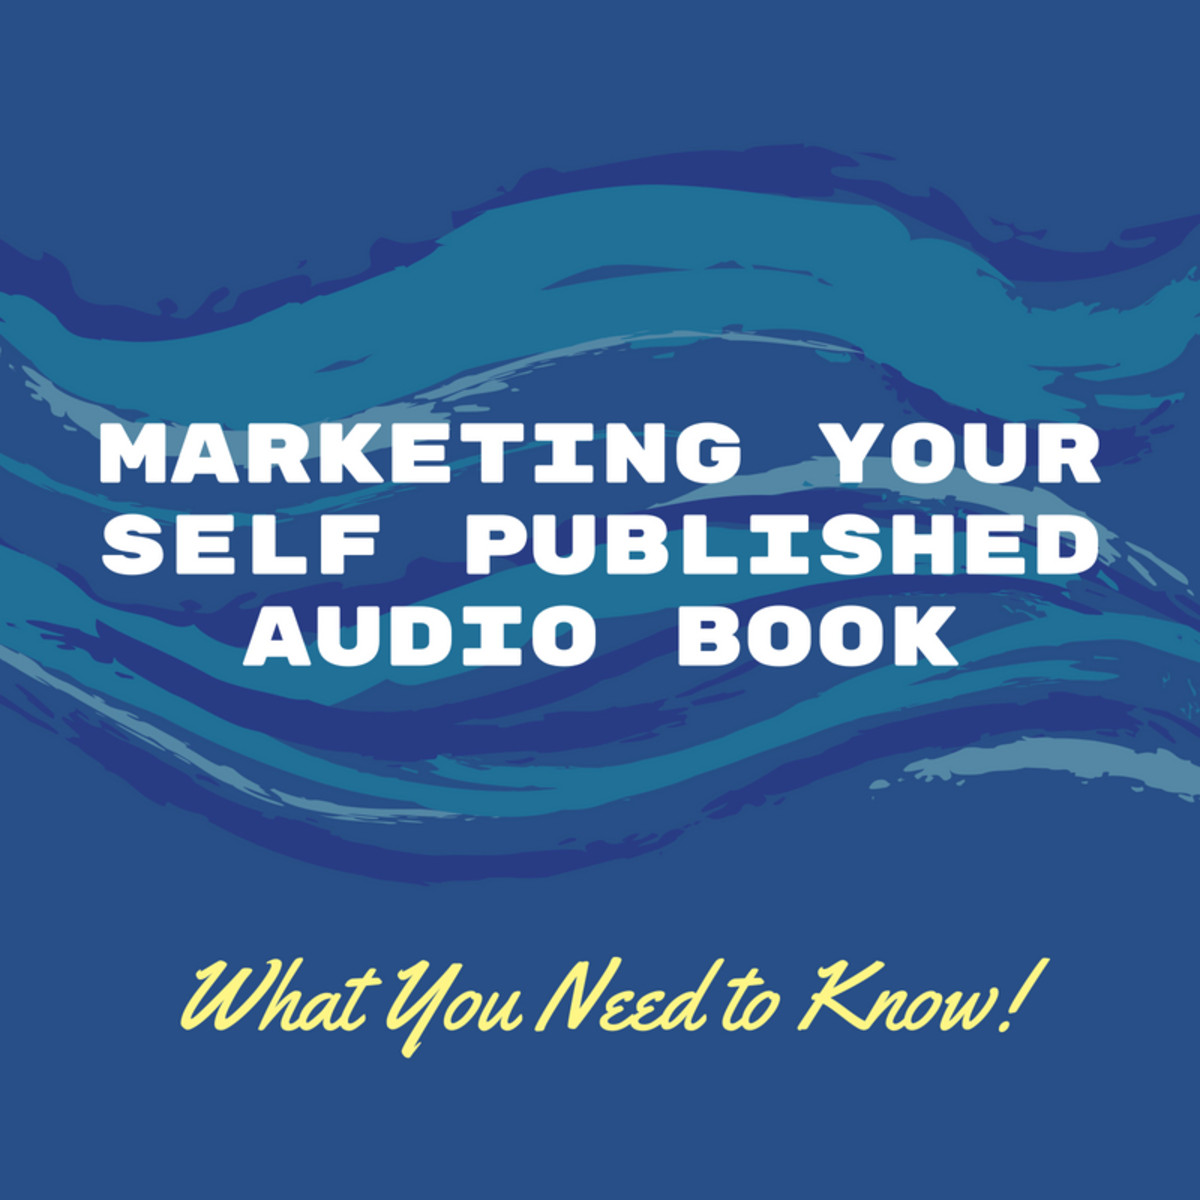 Marketing Your Self Published Audio Book: What You Need to Know